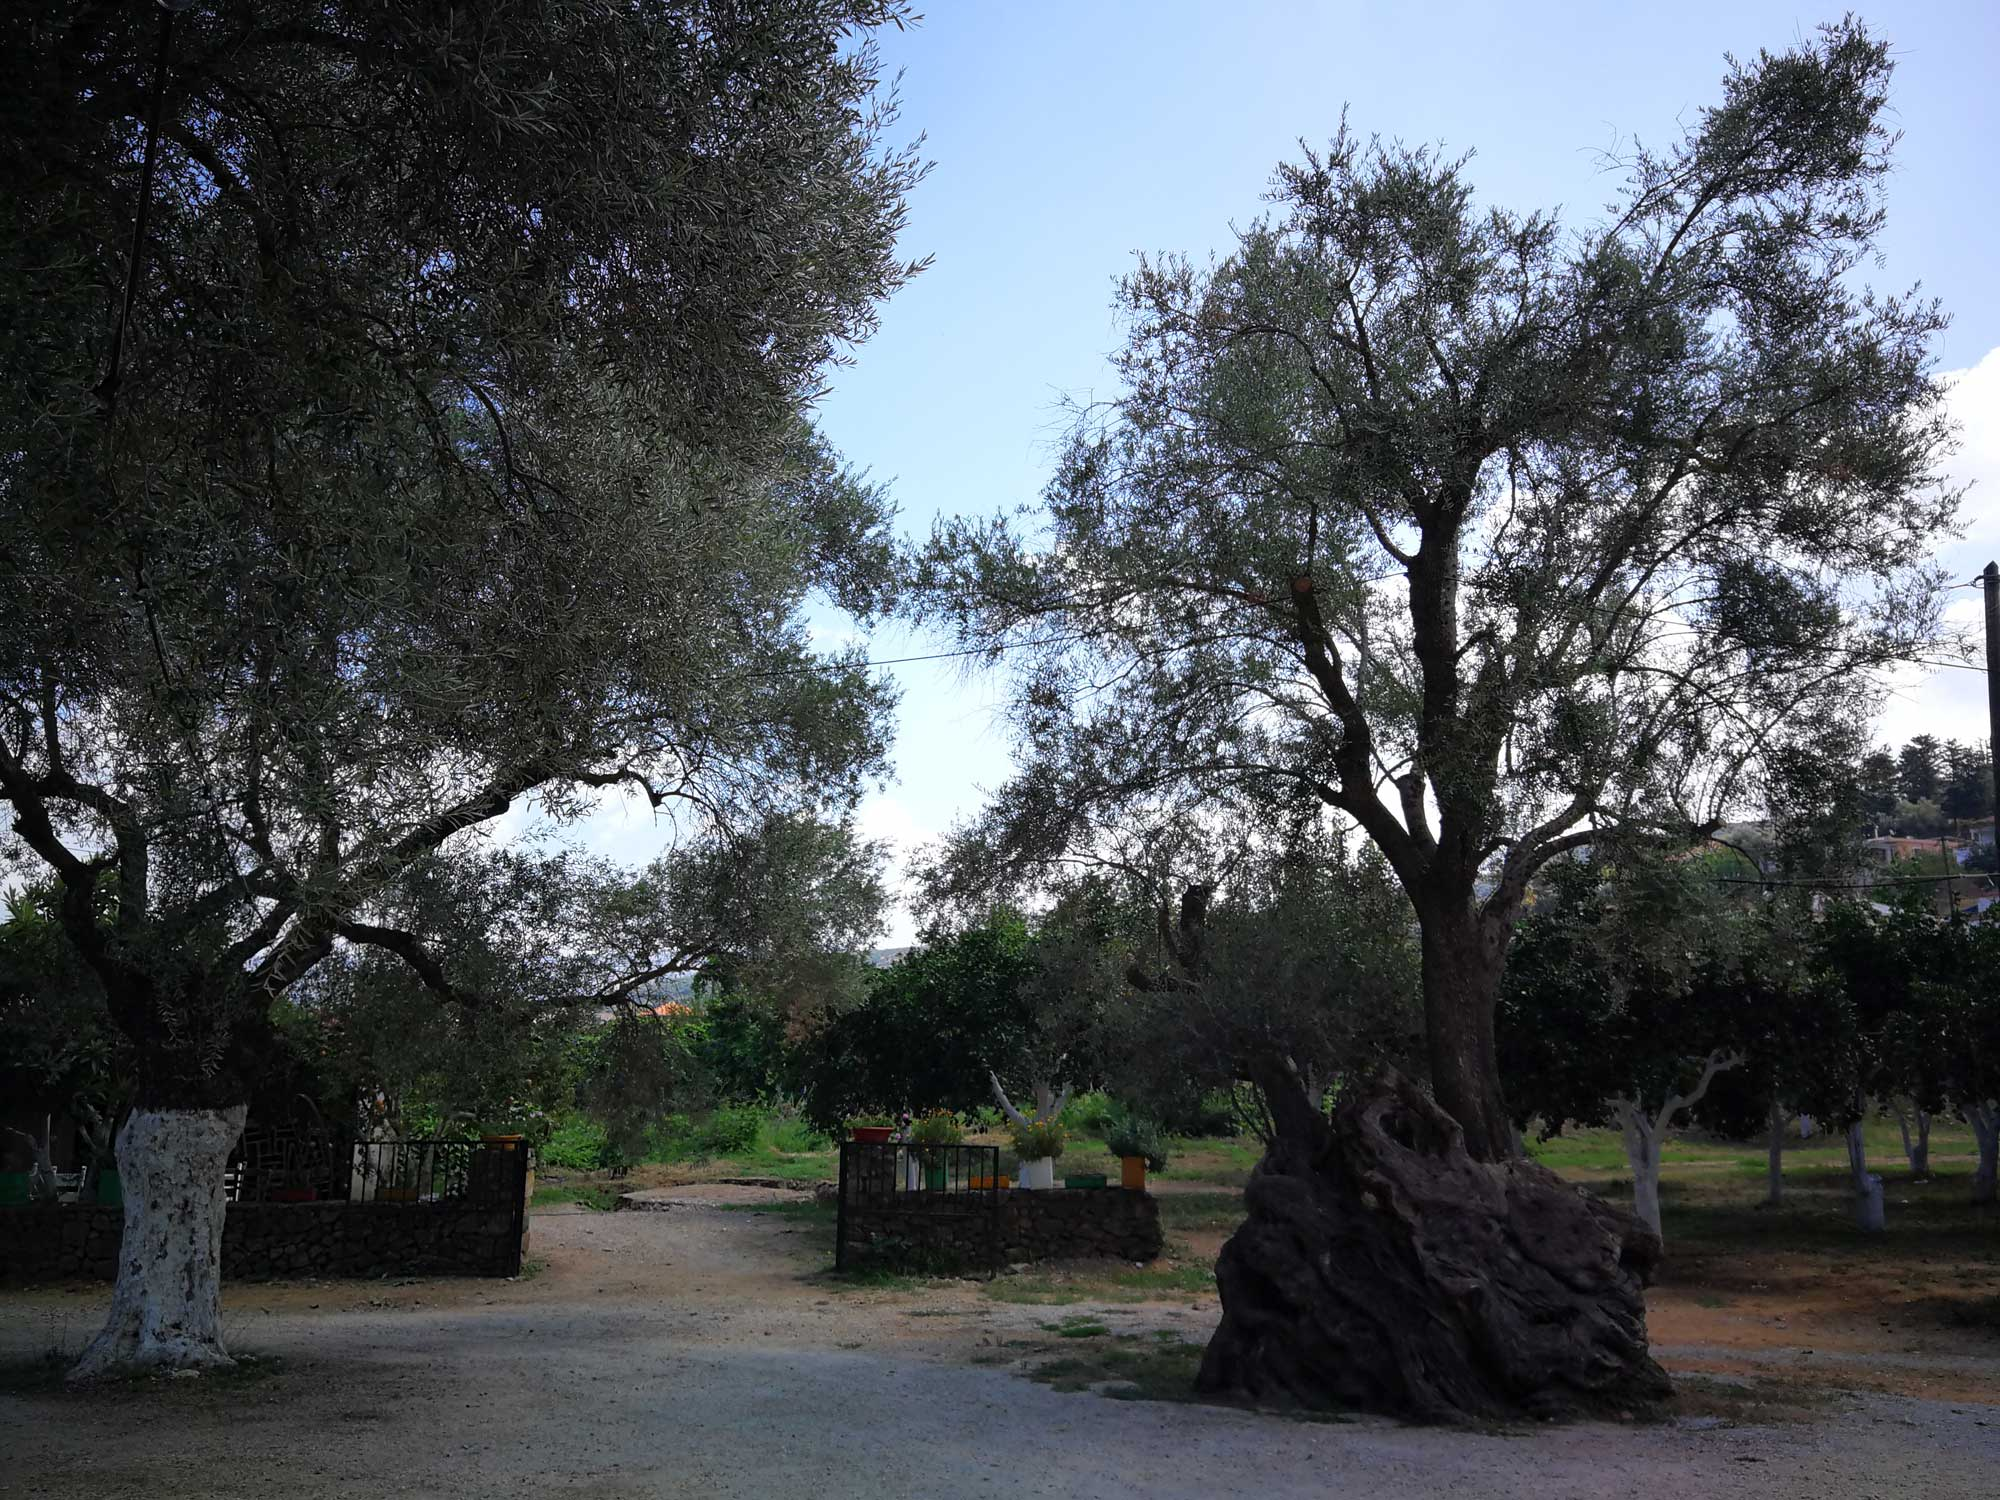 Manousakis Winery olive tree is 1200 years old.